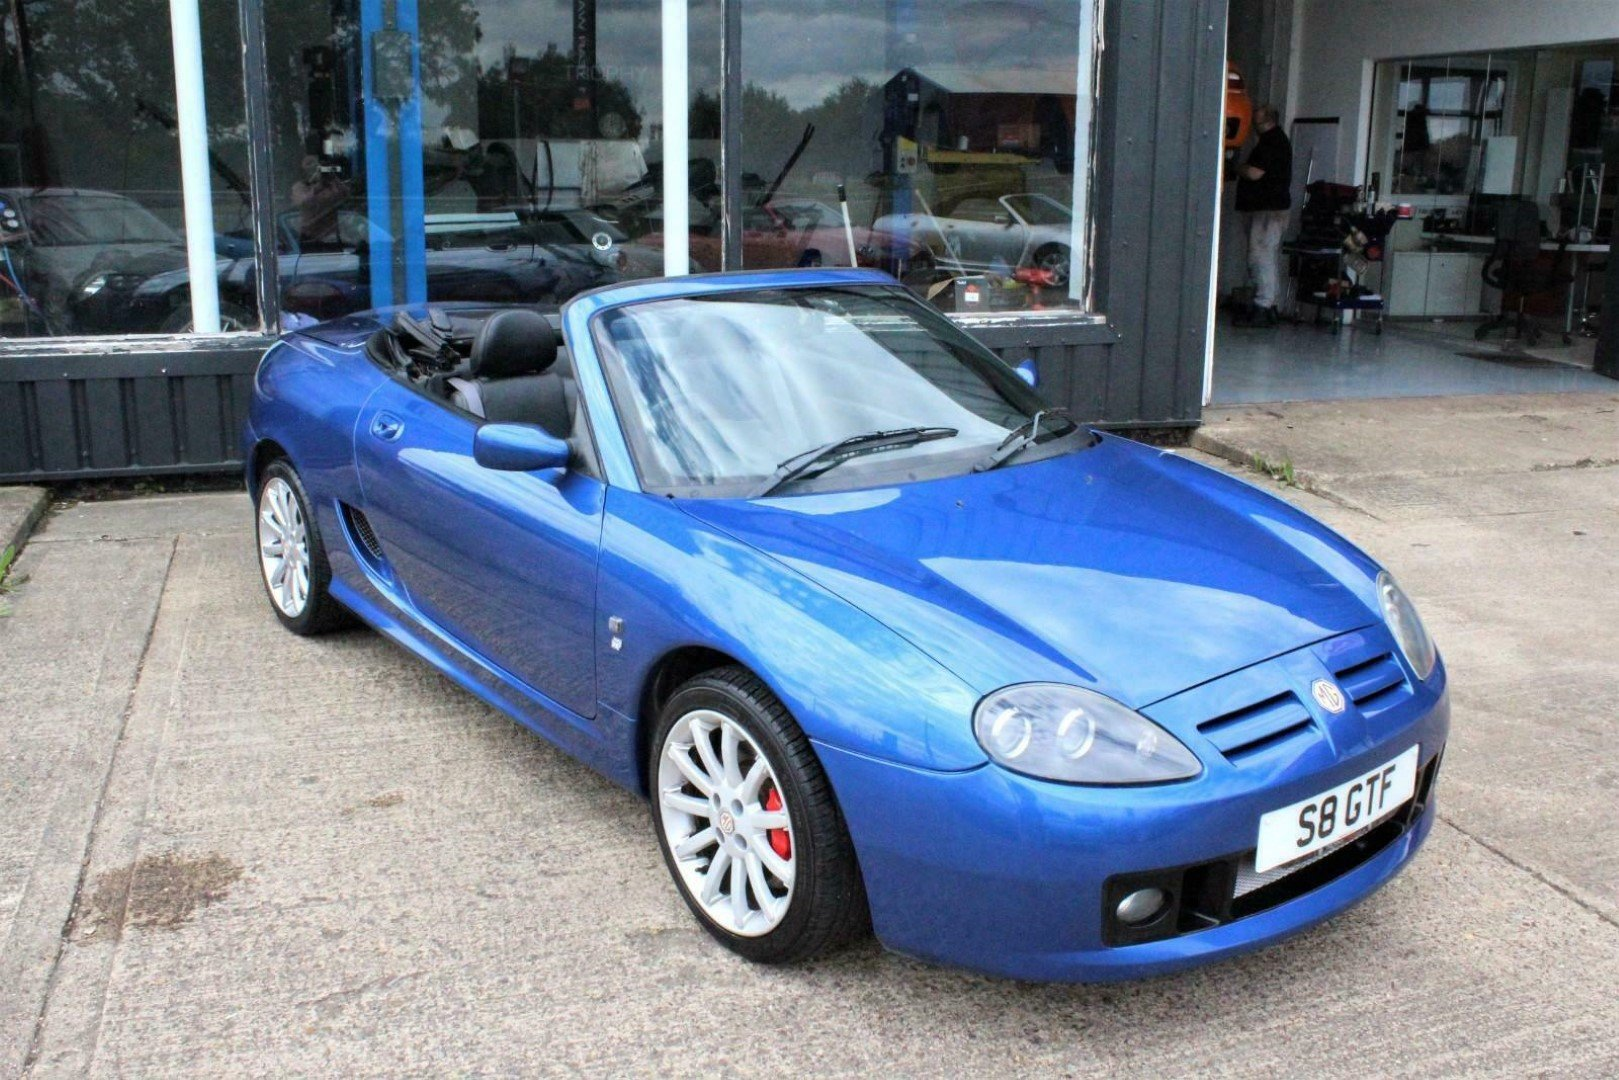 2003 MGTF 160,RARE COLOUR,OXFORD LEATHER,NEW HEADGASKET, For Sale (picture 1 of 6)